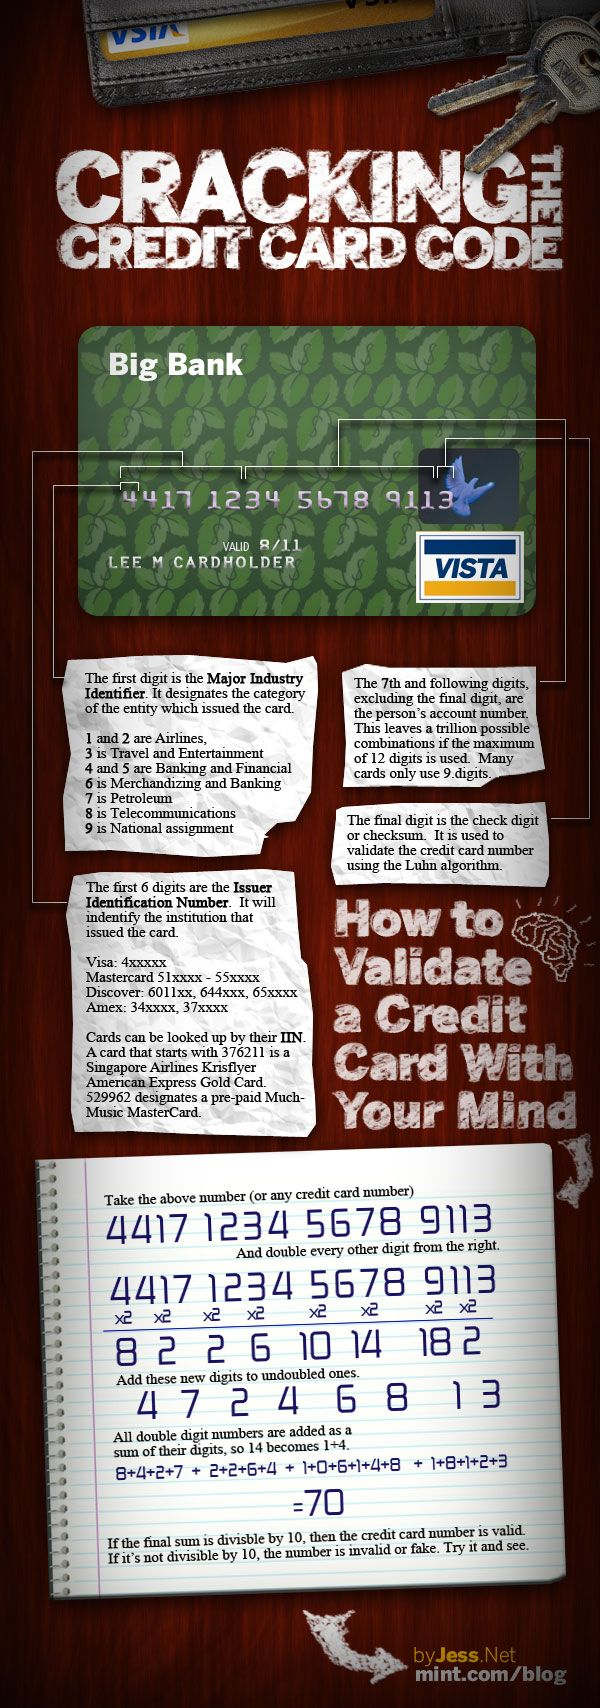 Forma Invoice Excel The  Best Visa Card Numbers Ideas On Pinterest  Gift Card  Send Invoice With Paypal Excel with Invoice Template Word 2010 Cracking The Credit Card Code Infographic Invoice Style Pdf